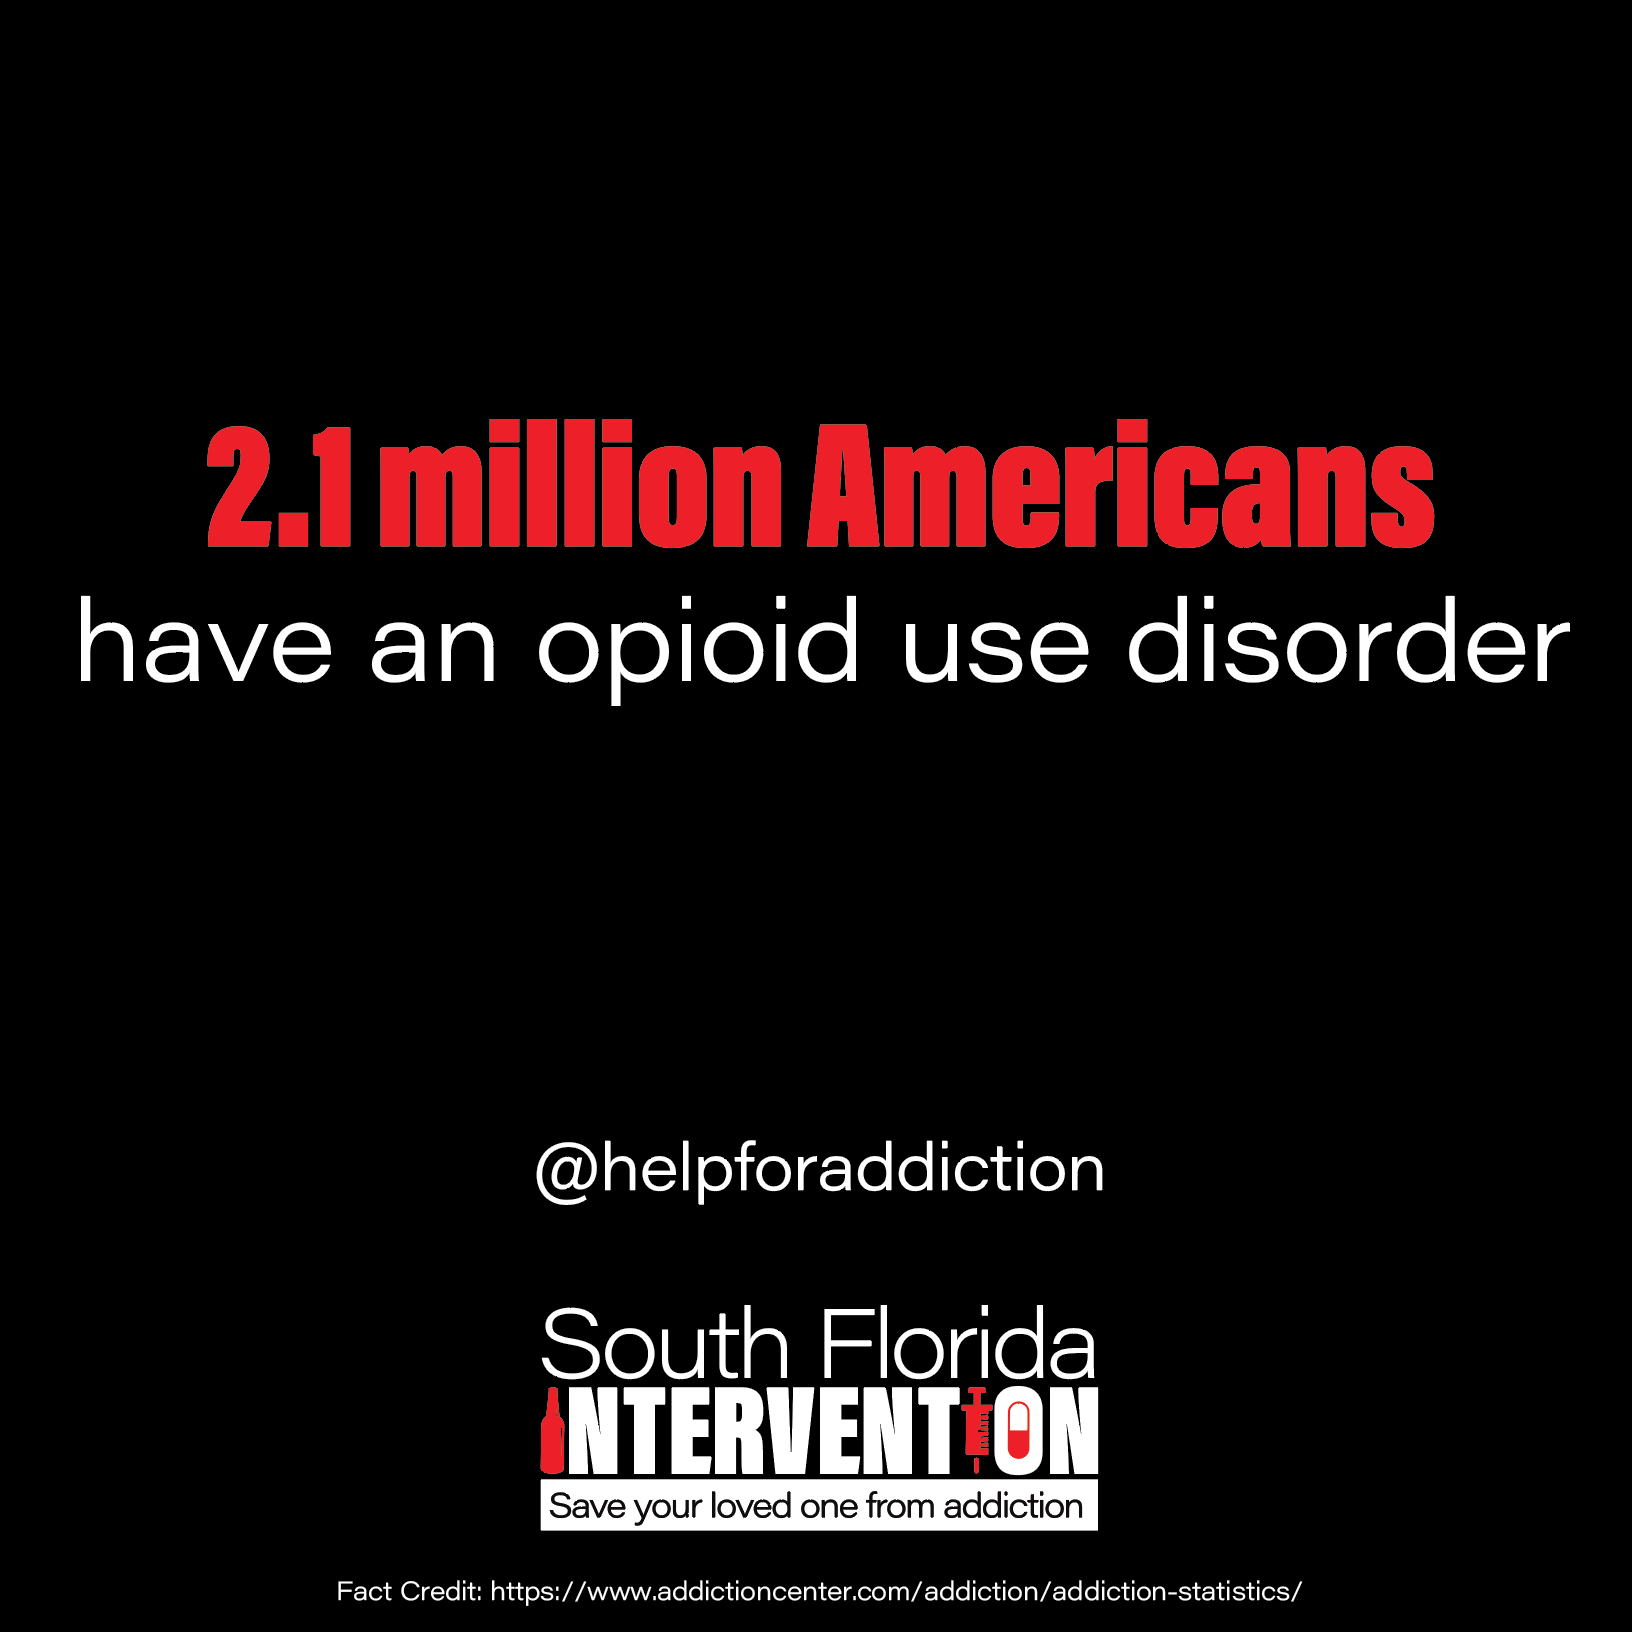 2.1 million Americans have an opioid use disorder @helpforaddiction